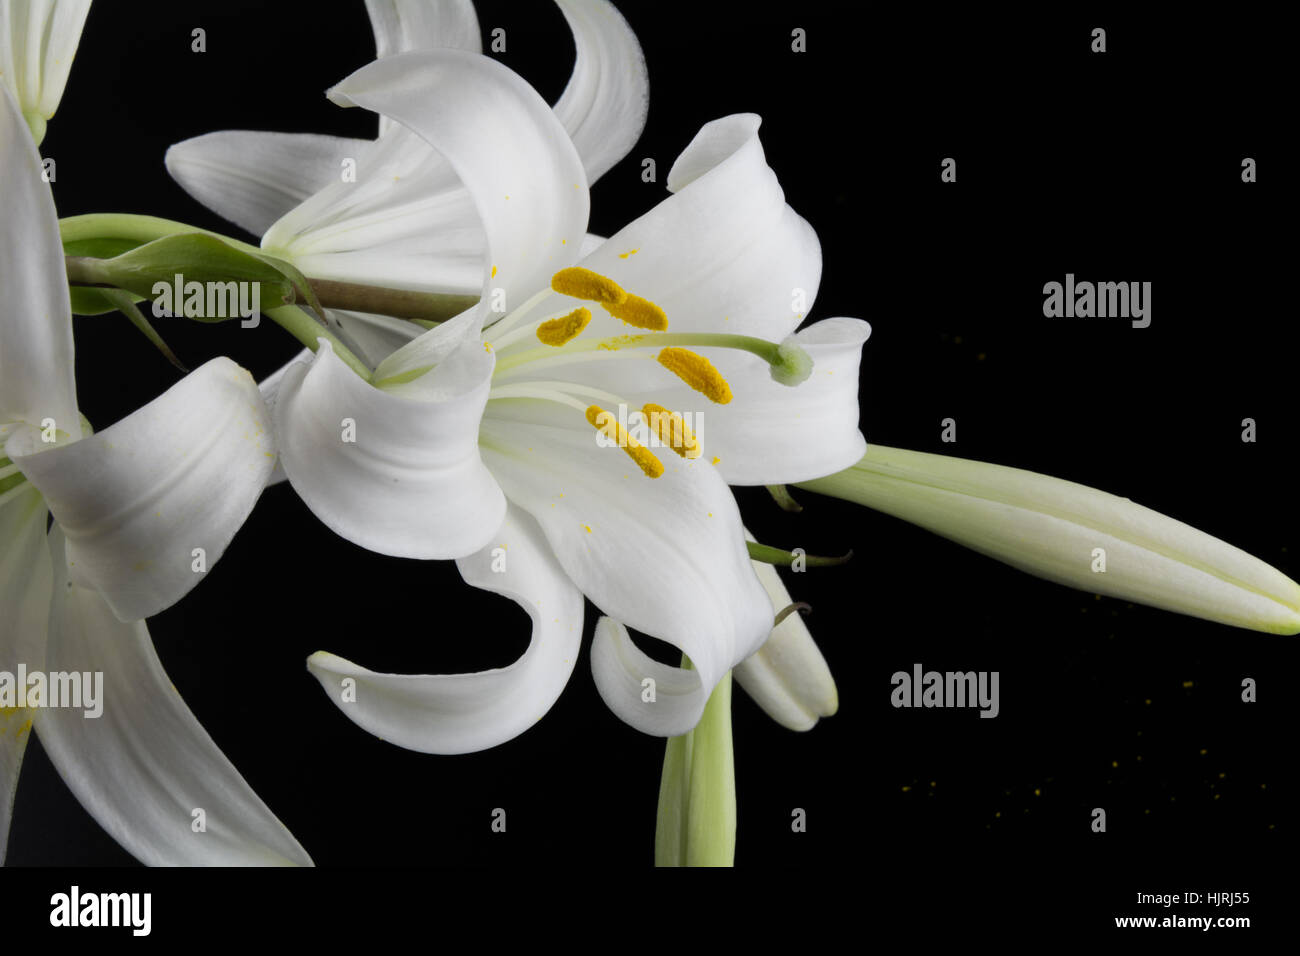 Flowers and buds of lilies on a black background stock photo flowers and buds of lilies on a black background izmirmasajfo